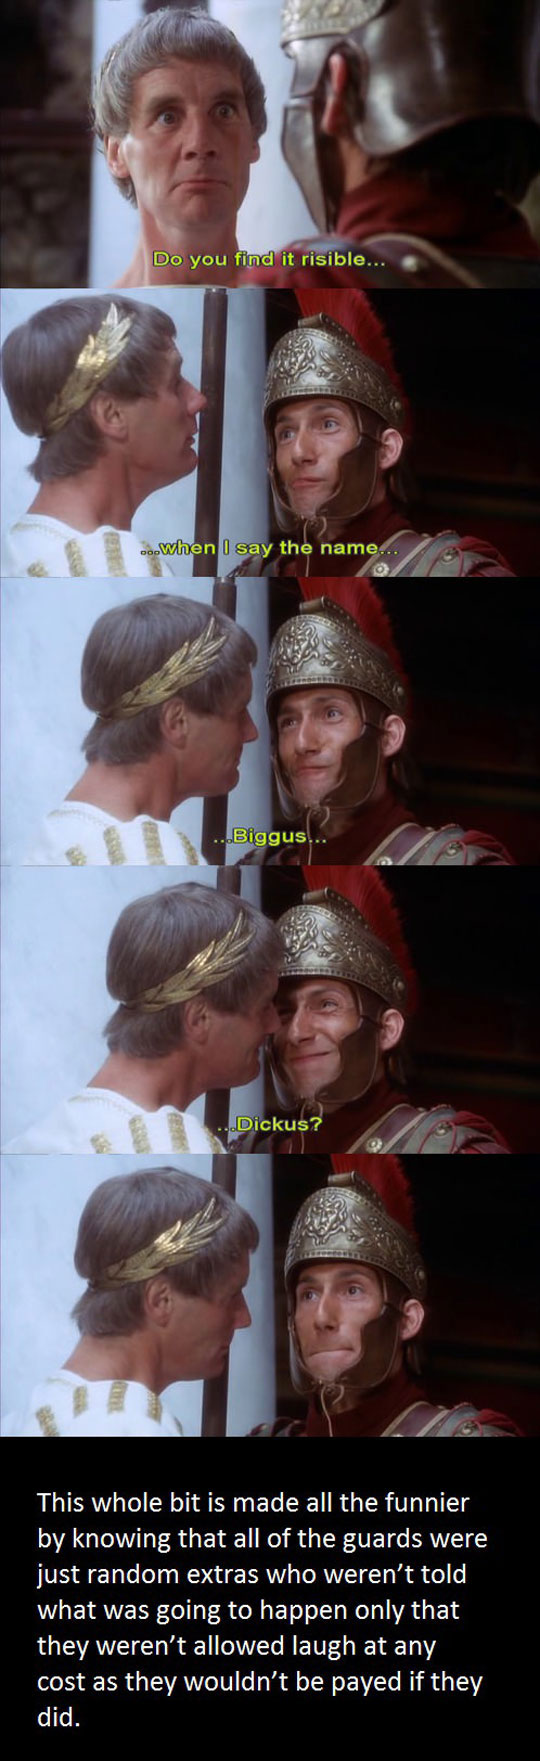 funny-Monty-Python-soldier-laughing-guard-actor